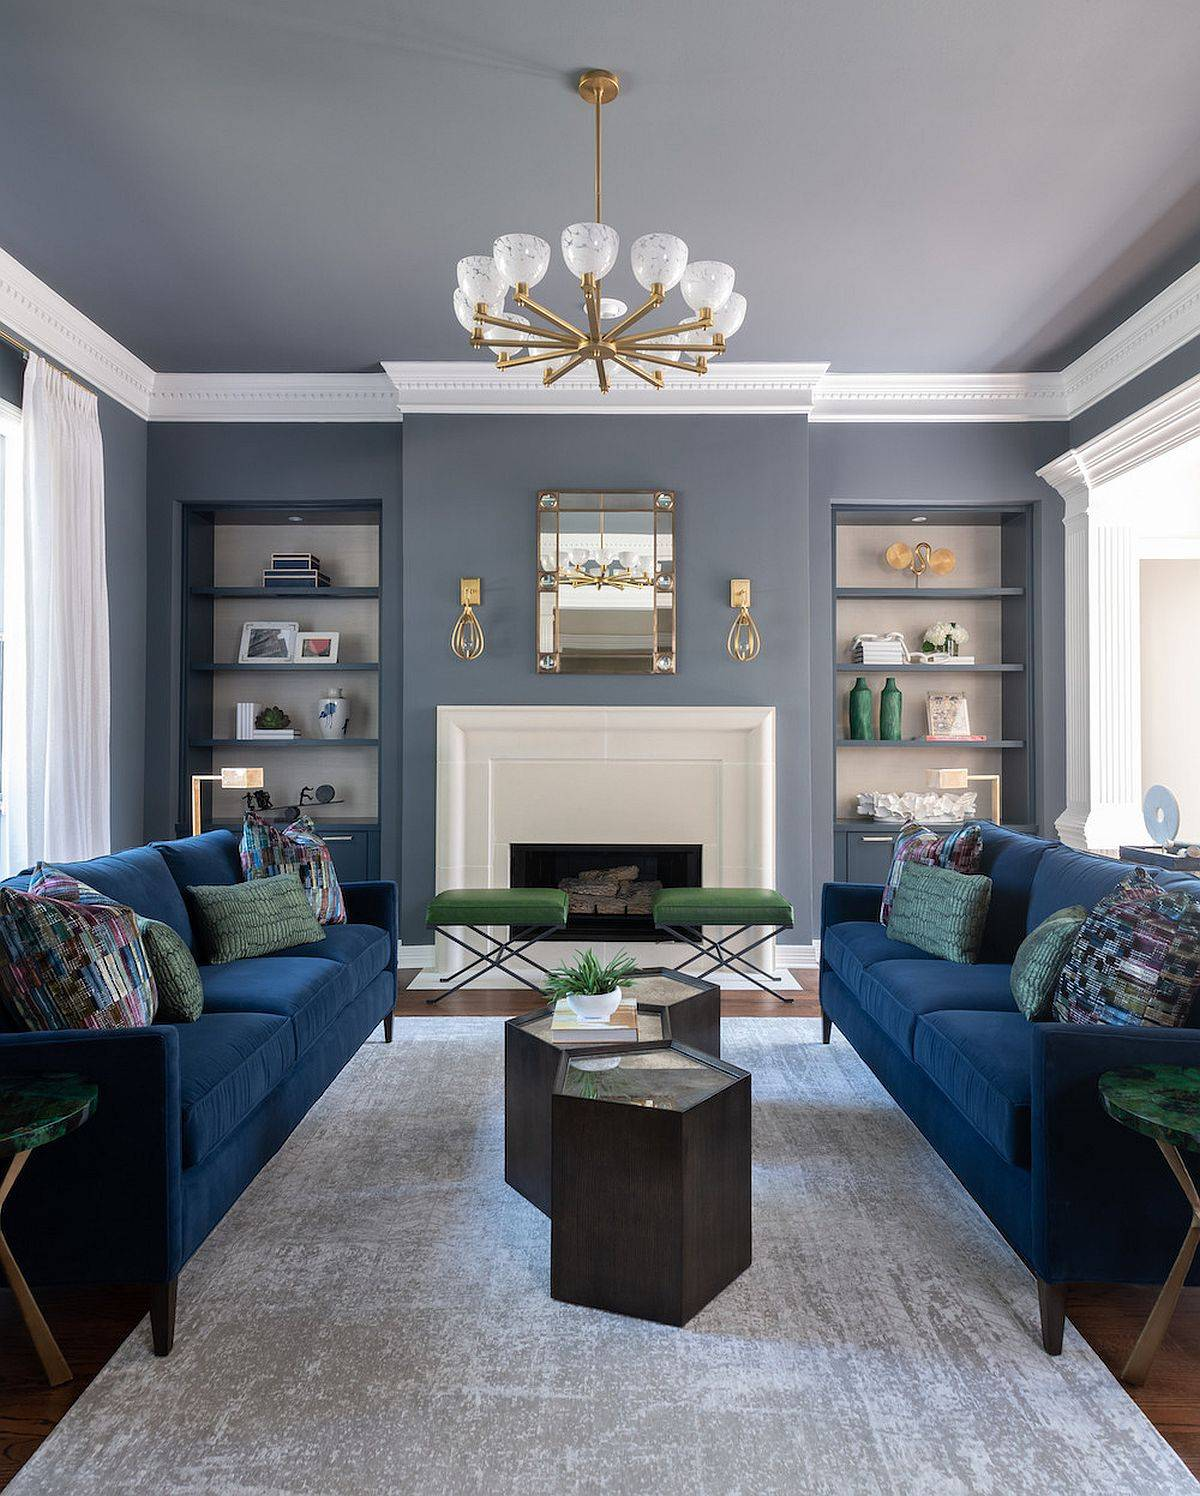 Modern-living-room-in-gray-with-bright-blue-sofas-and-space-savvy-design-51799